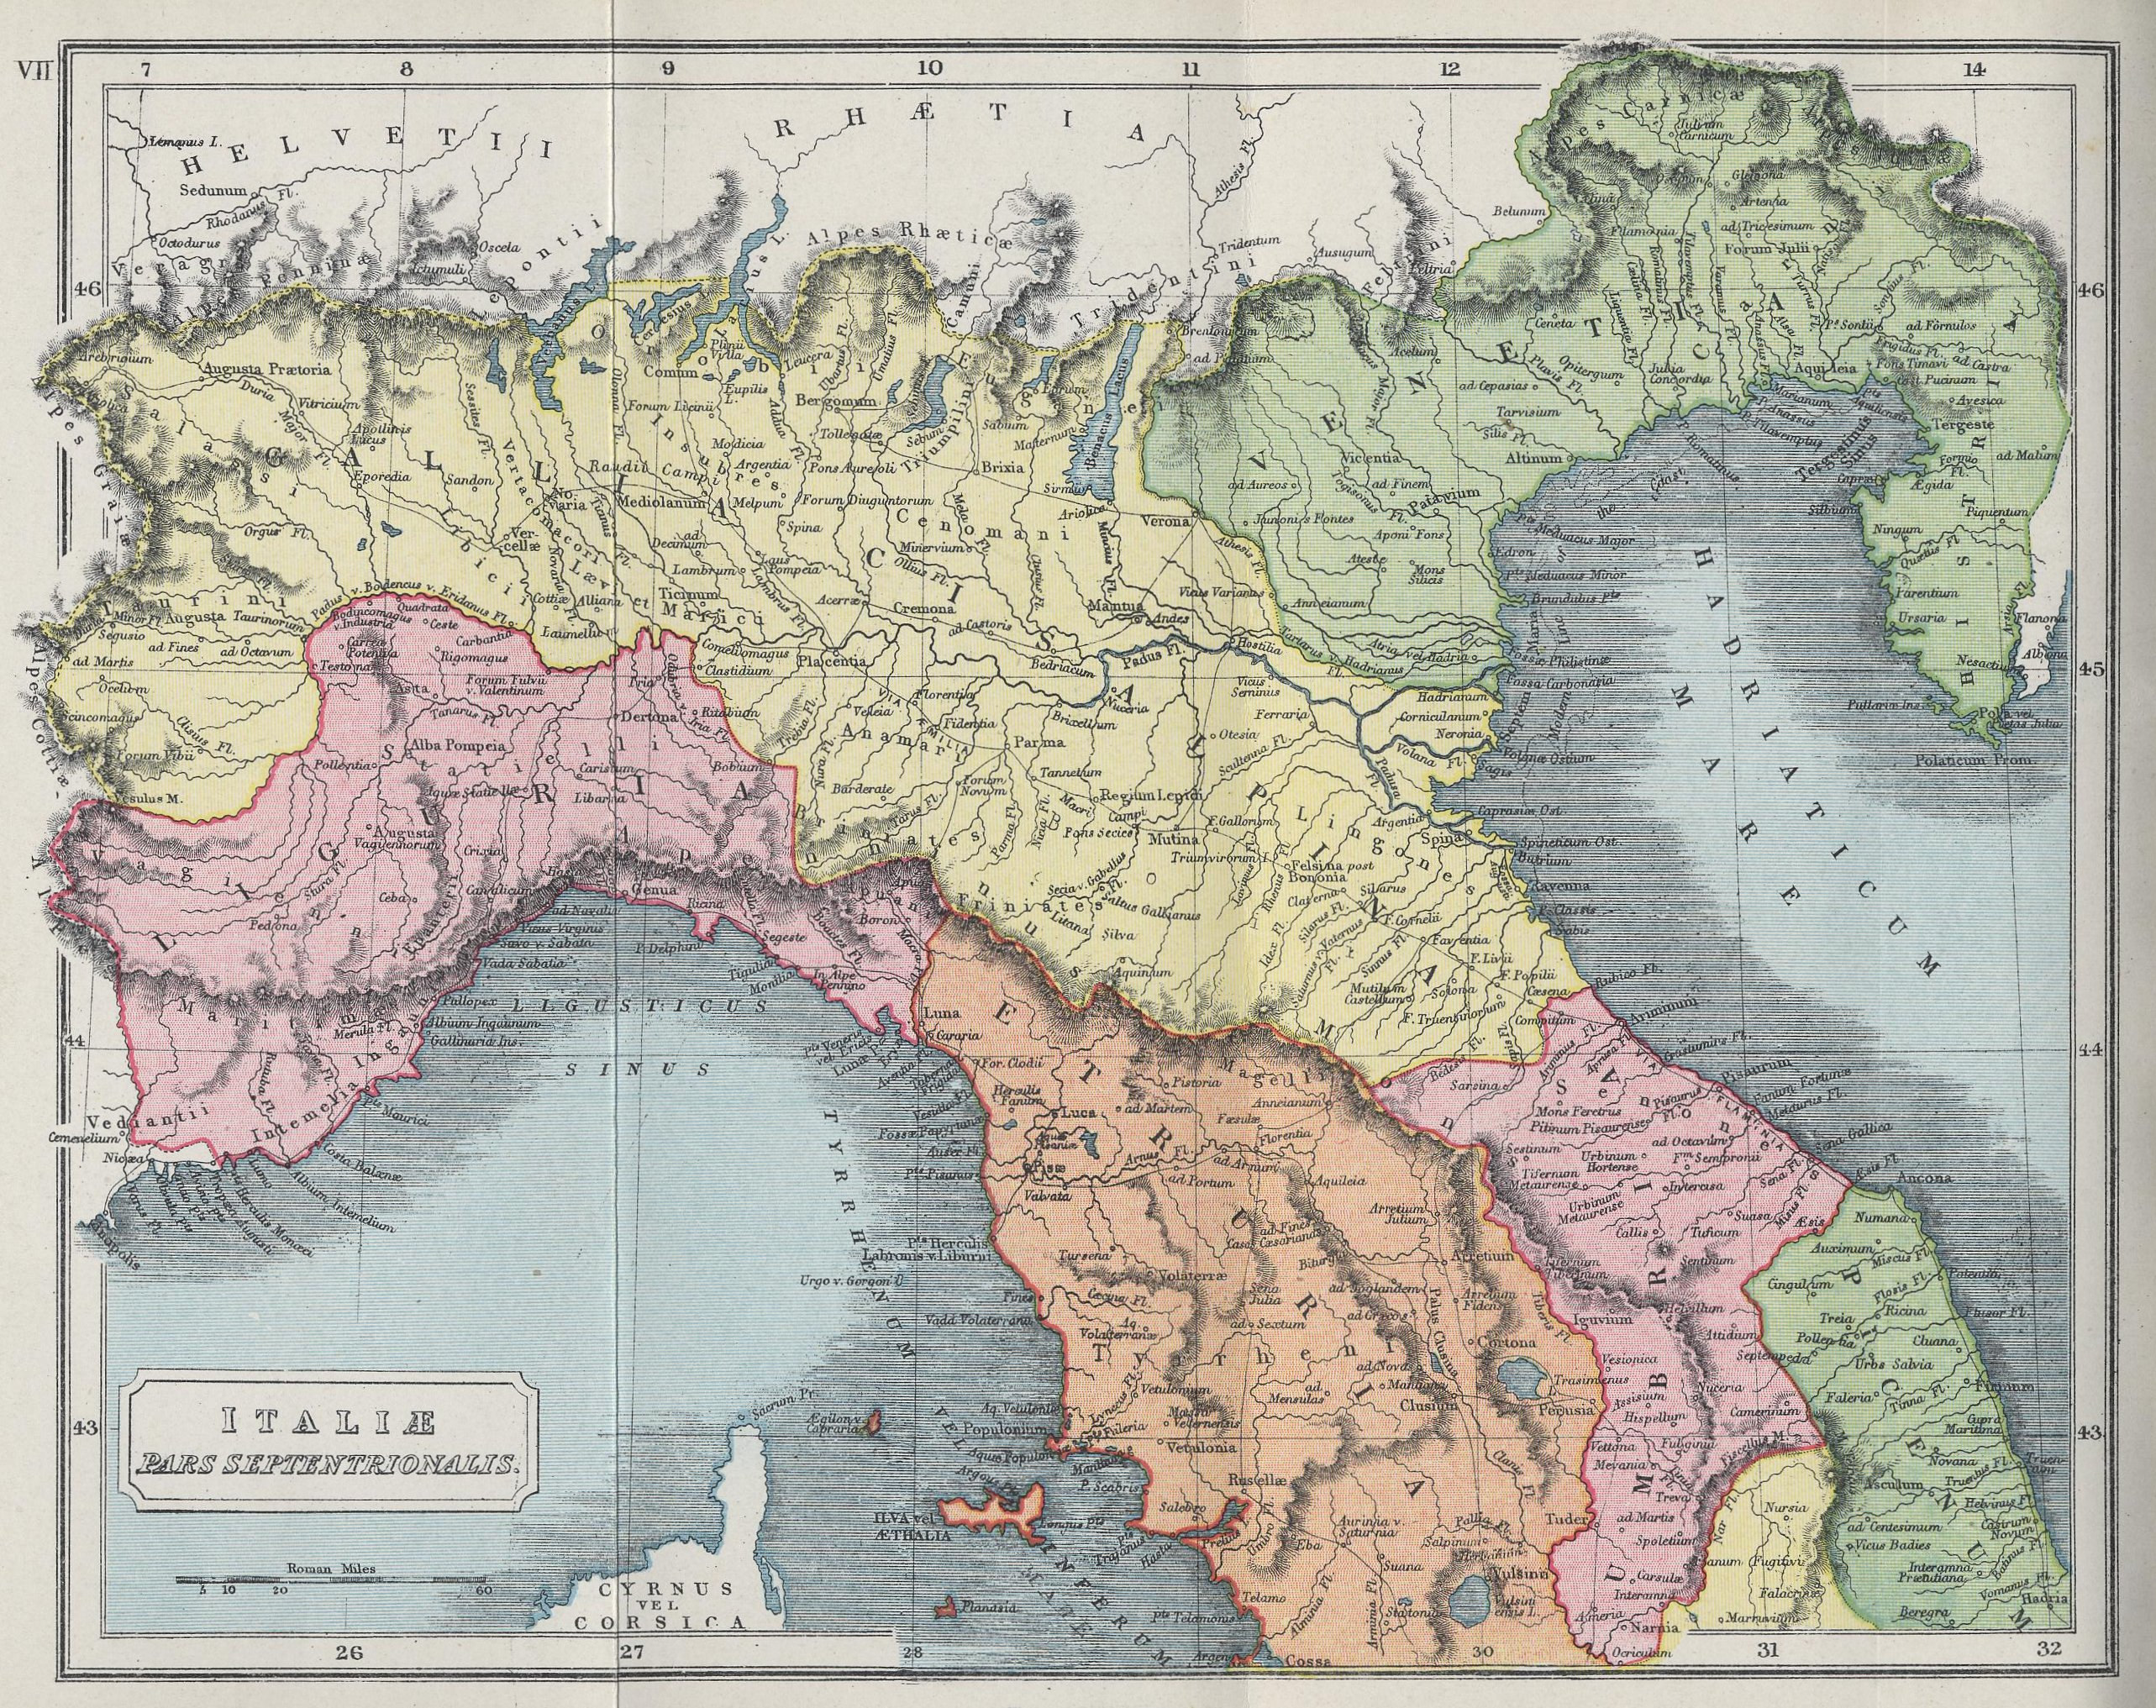 Map of Northern Italy70 BC - AD 180